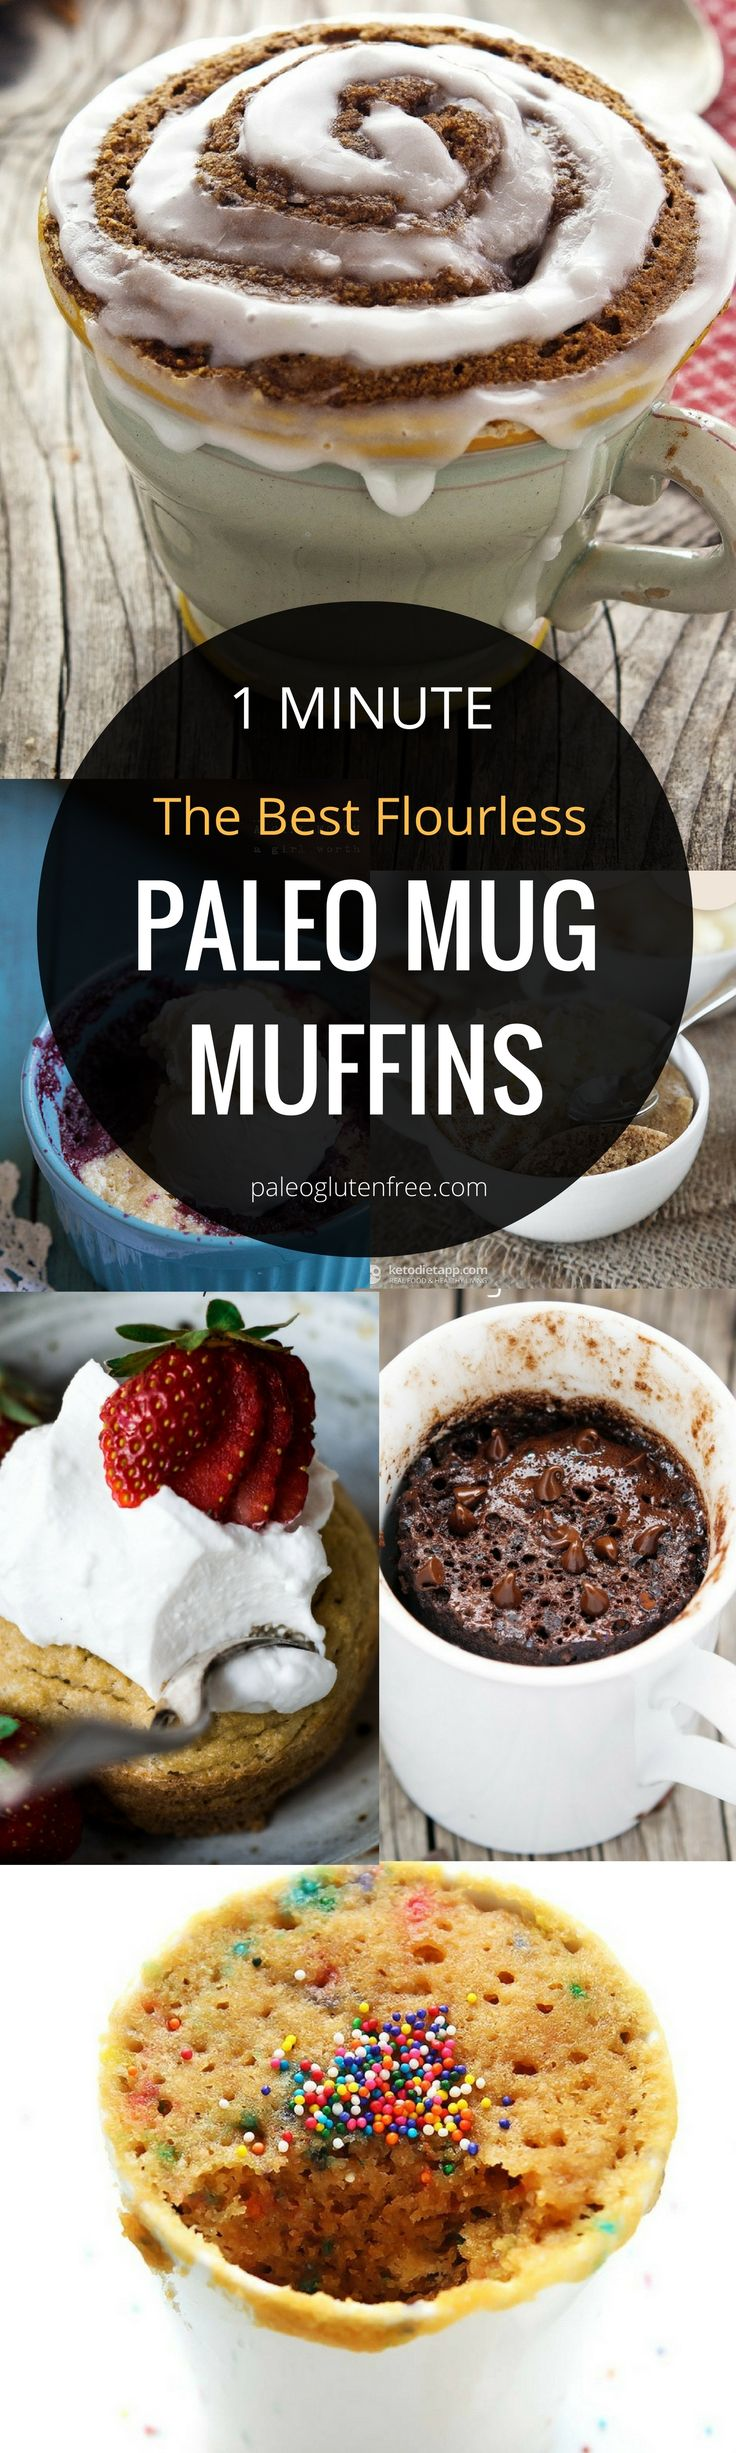 Mug Muffins to die for!! The best easy 1 Minute Flourless Mug Muffins! healthy Paleo Microwave blueberry muffin recipe. Easy gluten free breakfast: chocolate and banana mug muffins! All the best, just for you!